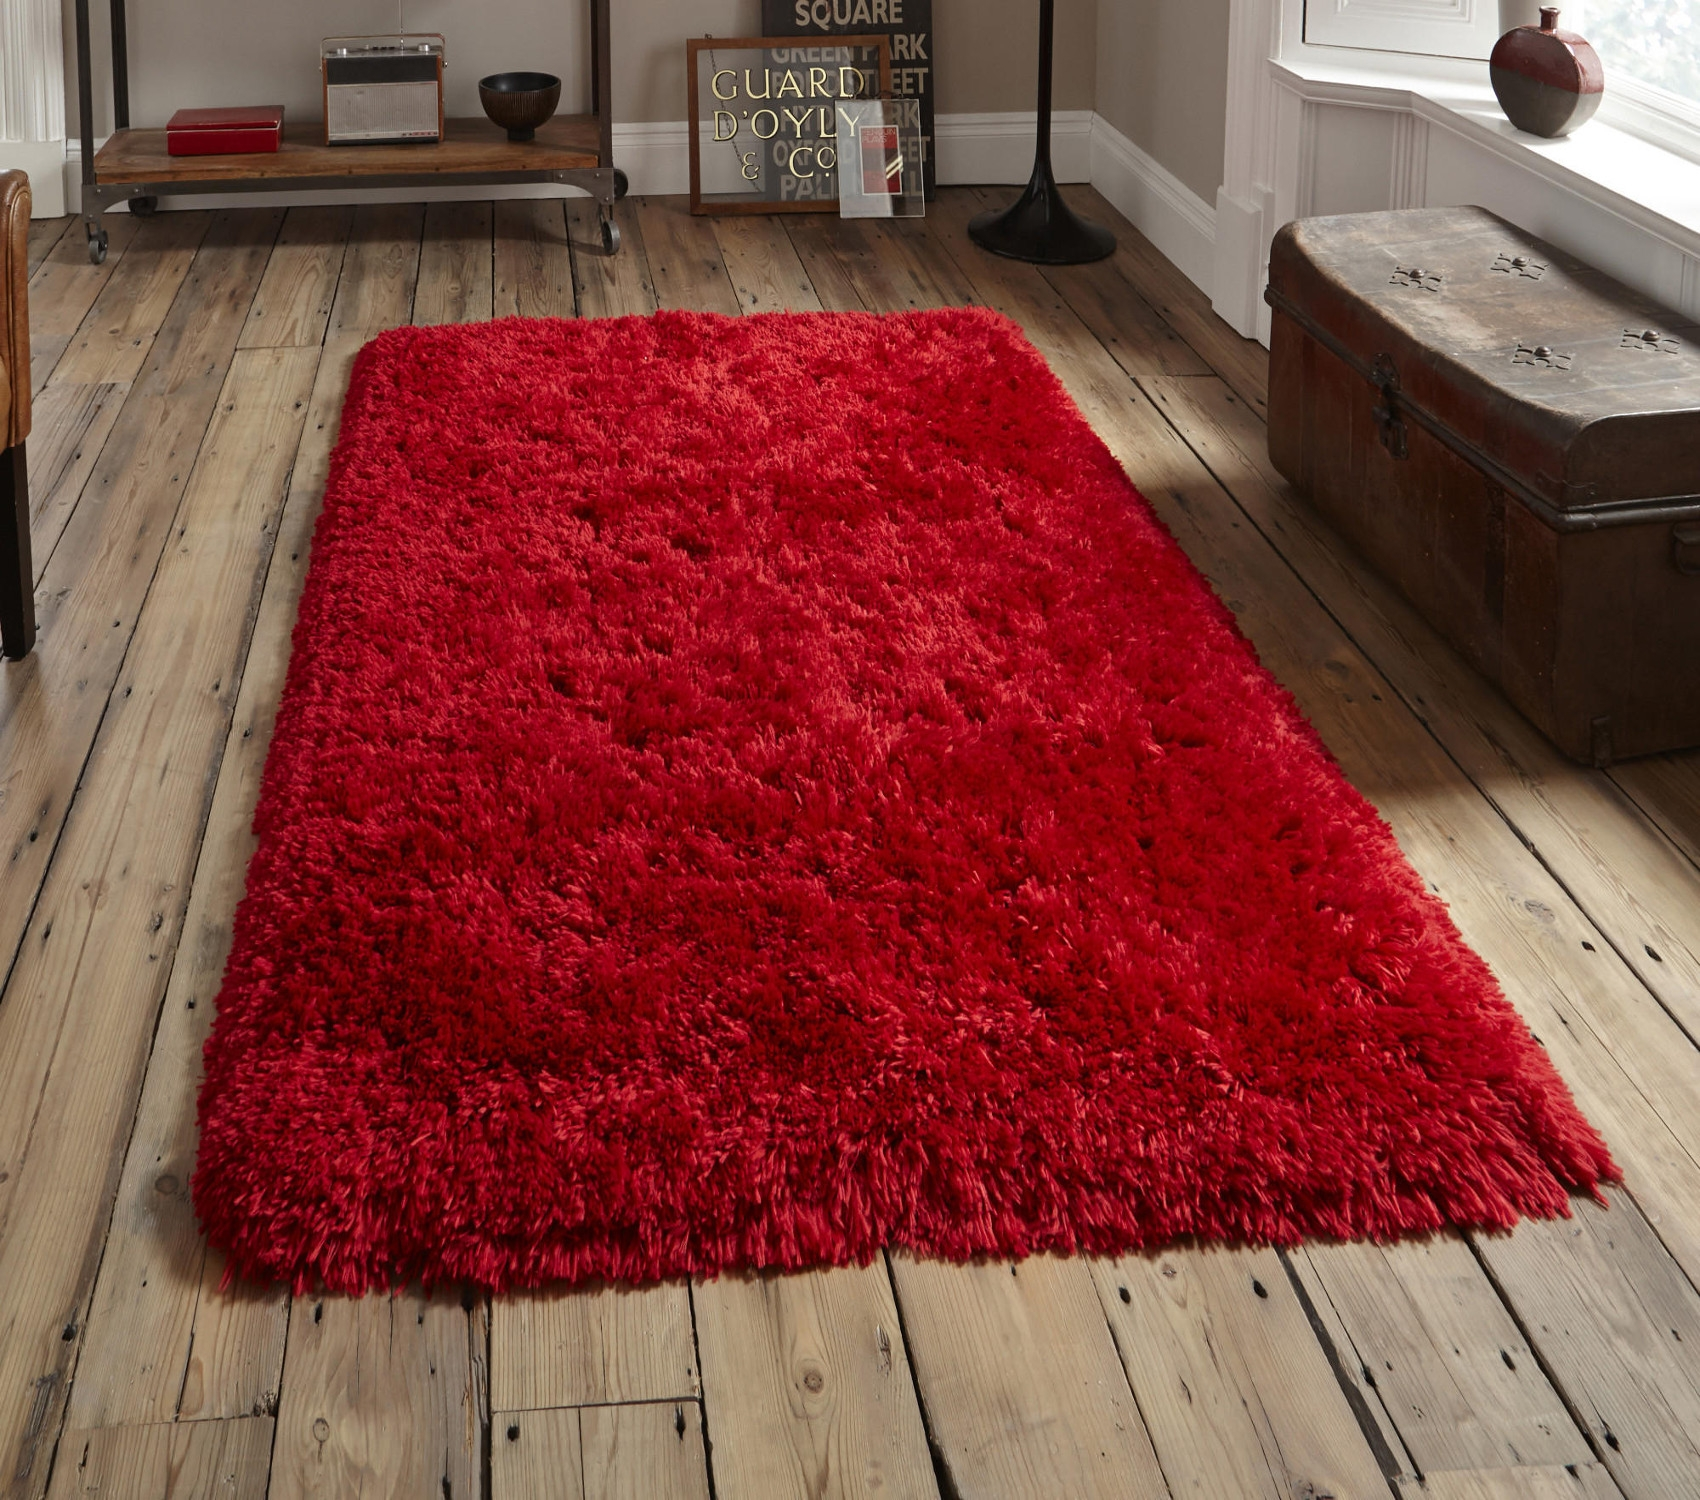 Shaggy Red Rugs Home Decors Collection Intended For Large Red Rugs (View 4 of 15)